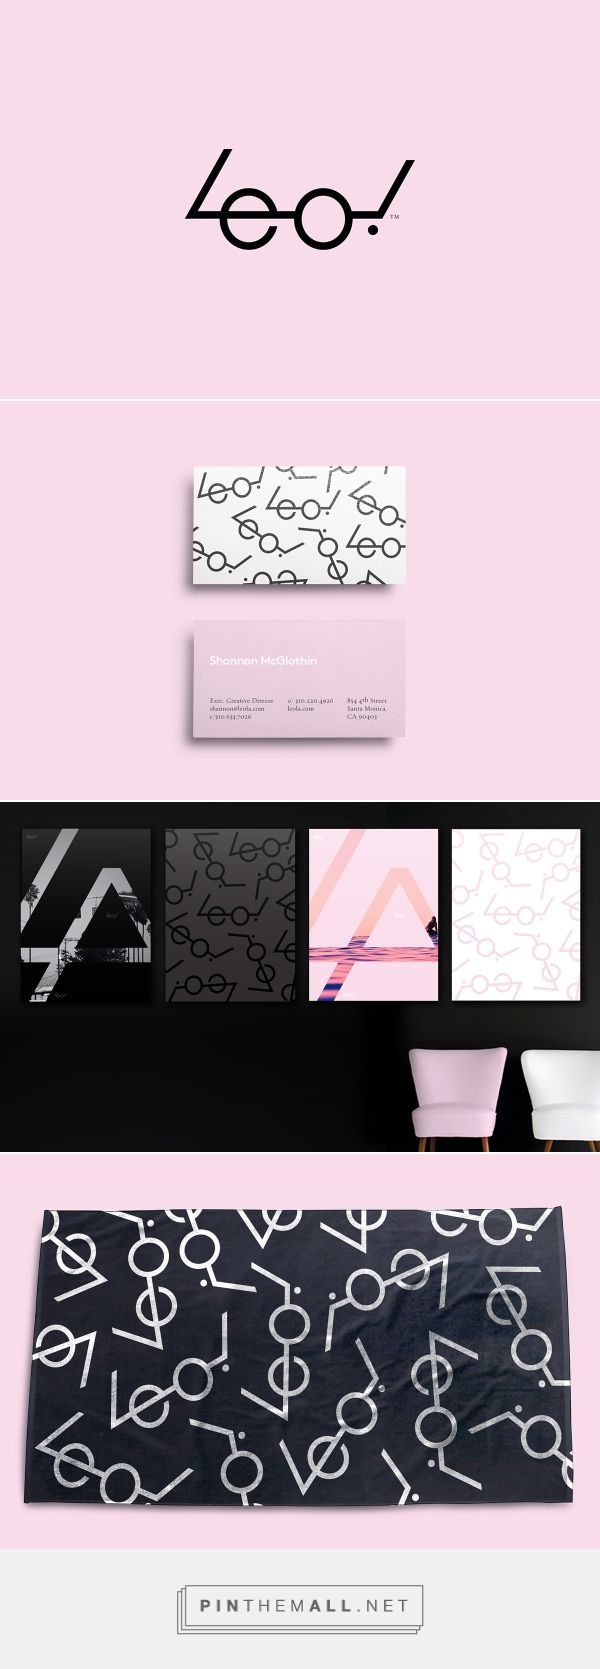 Leo! on Behance | Fivestar Branding – Design and Branding Agency & Inspiration Gallery